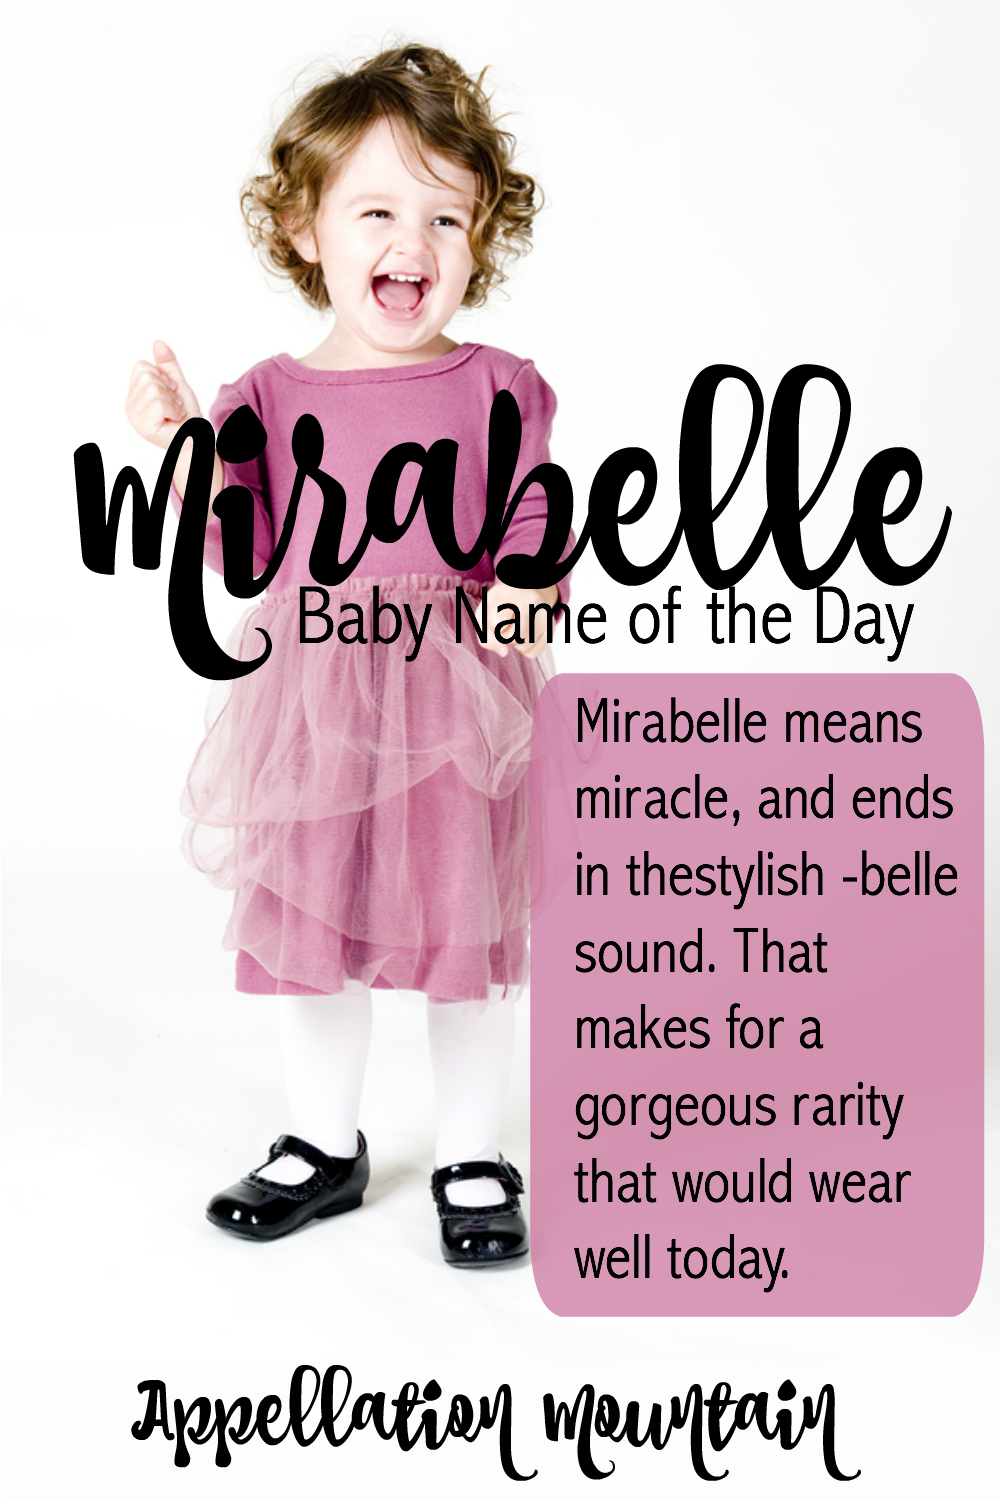 Rarer than popular girl names like Isabella and Annabelle, Mirabelle is a girl's name with a great meaning. If you're after unexpected baby names that are exactly on trend, Mirabelle is one to add to your list!